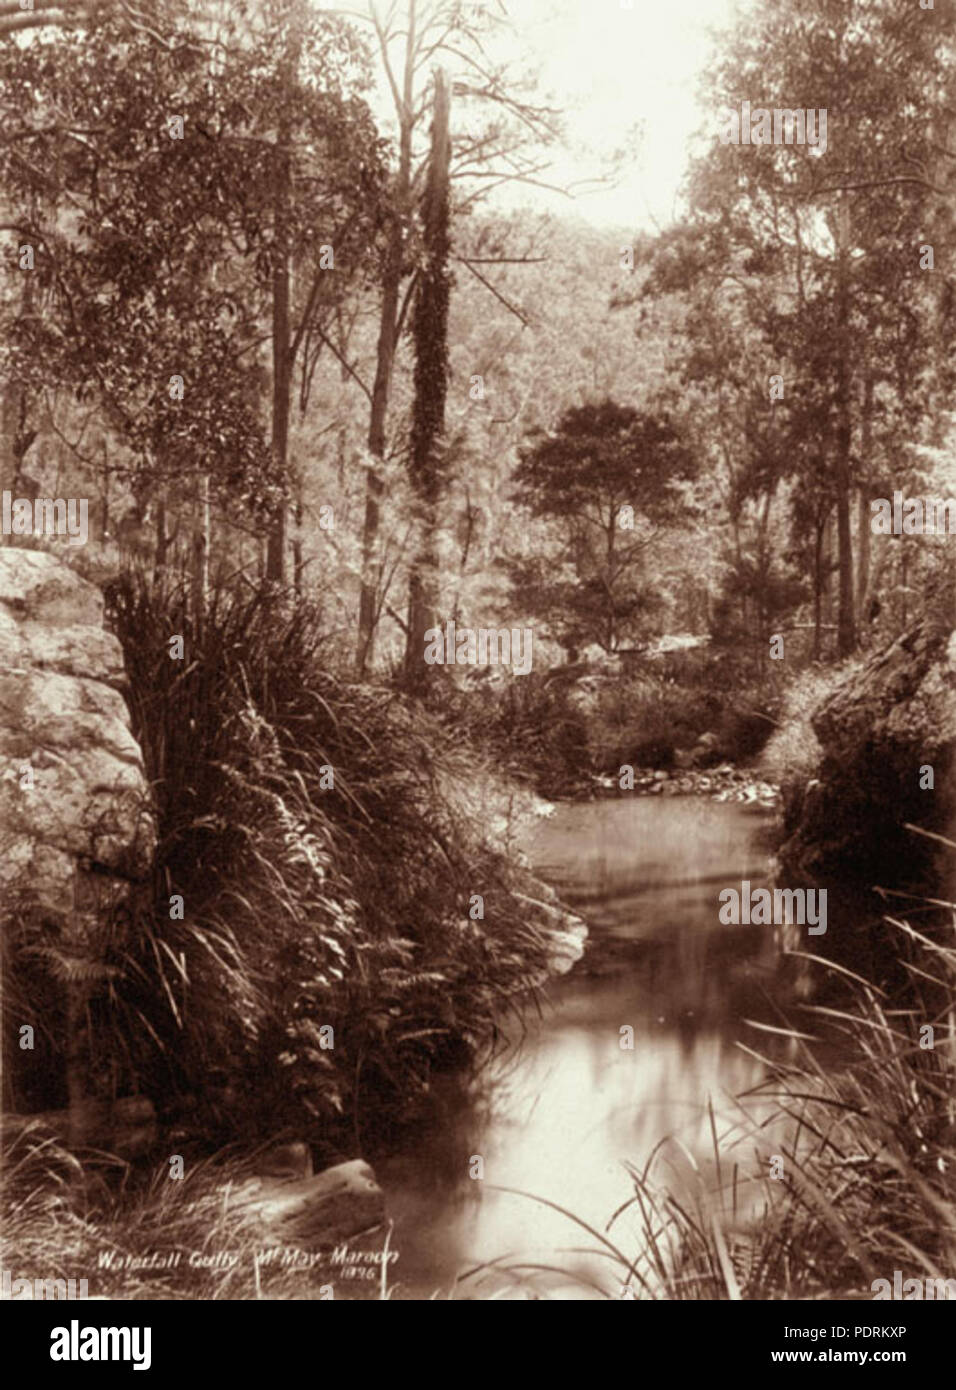 107 Queensland State Archives 2469 Waterfall Gully Mount May Maroon 1896 - Stock Image